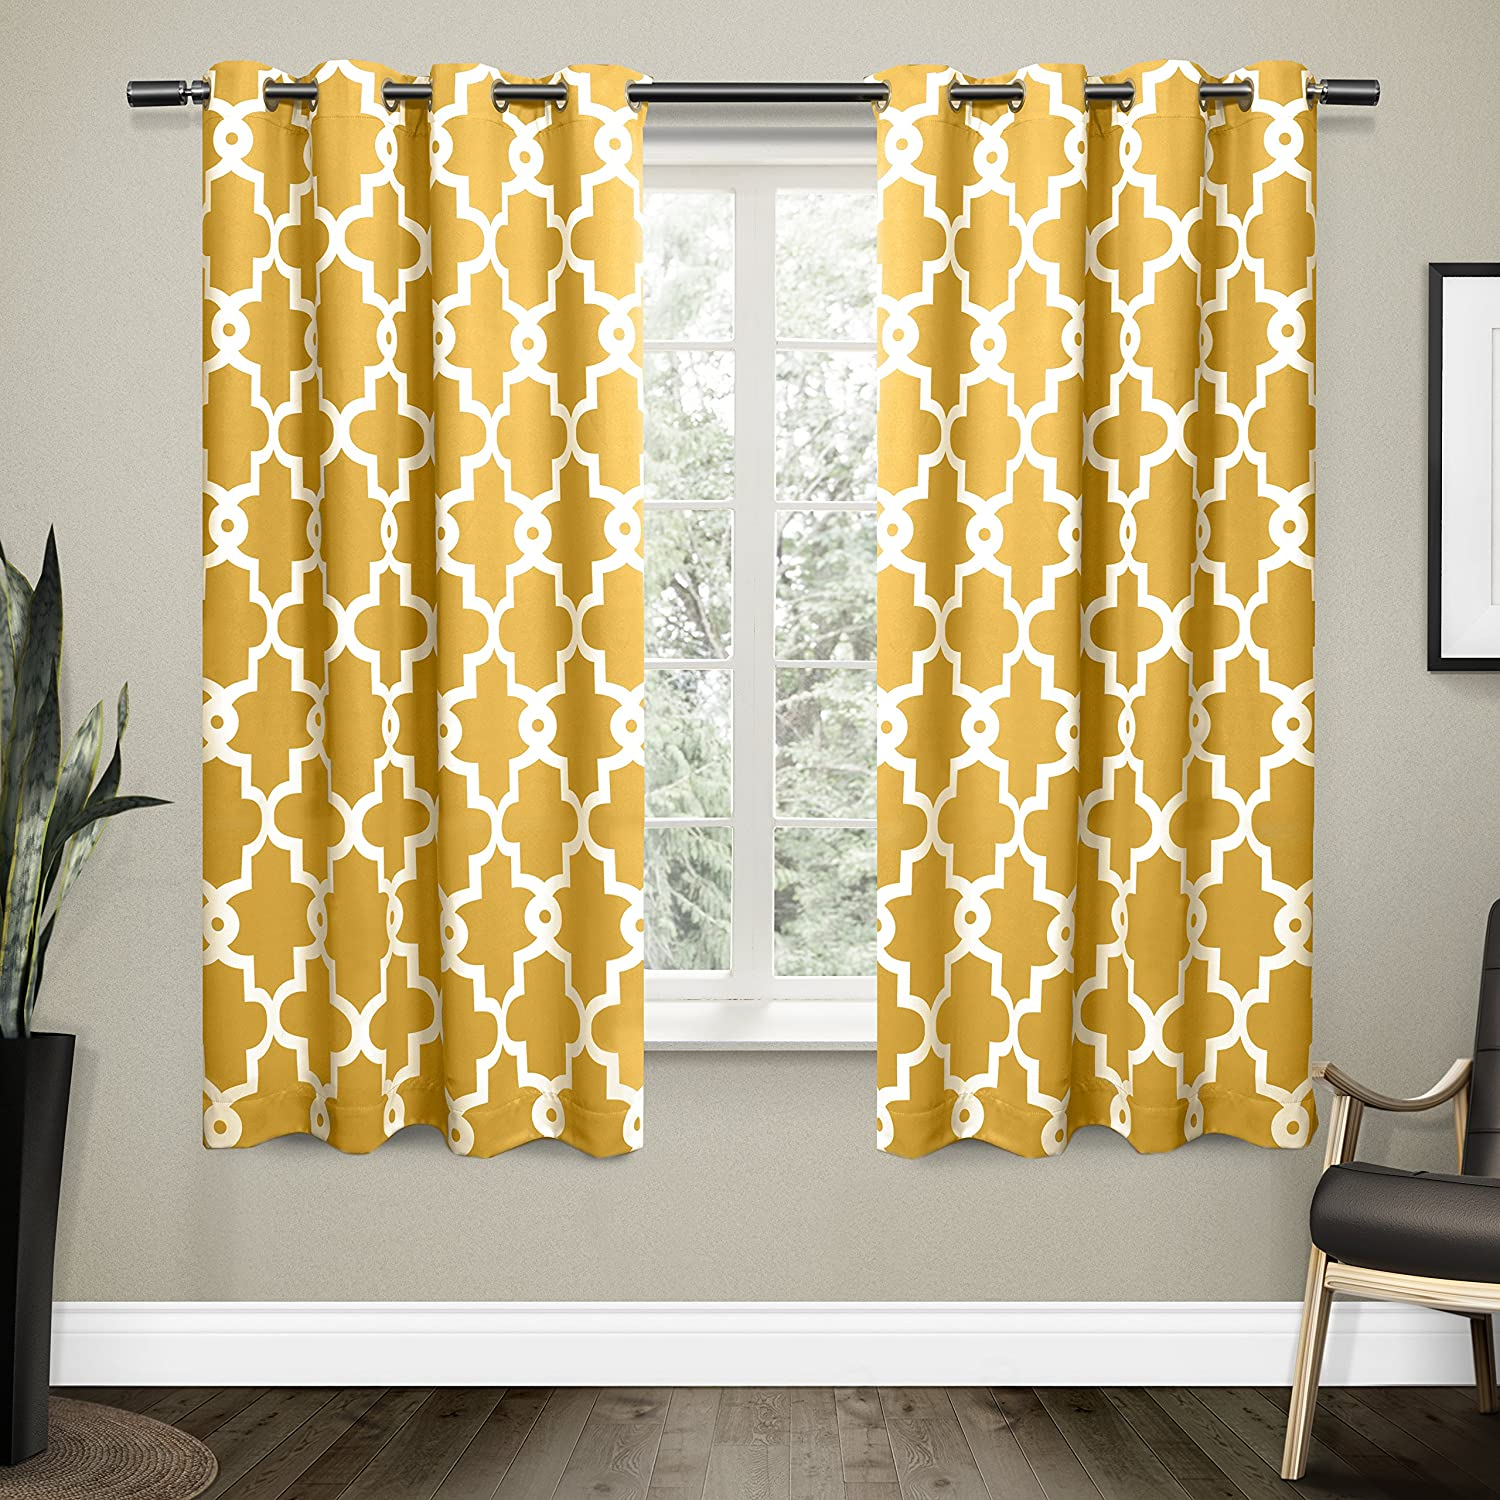 Ironwork Sateen Woven Blackout Thermal Grommet Top Window Curtain Panel Pair, Sundress